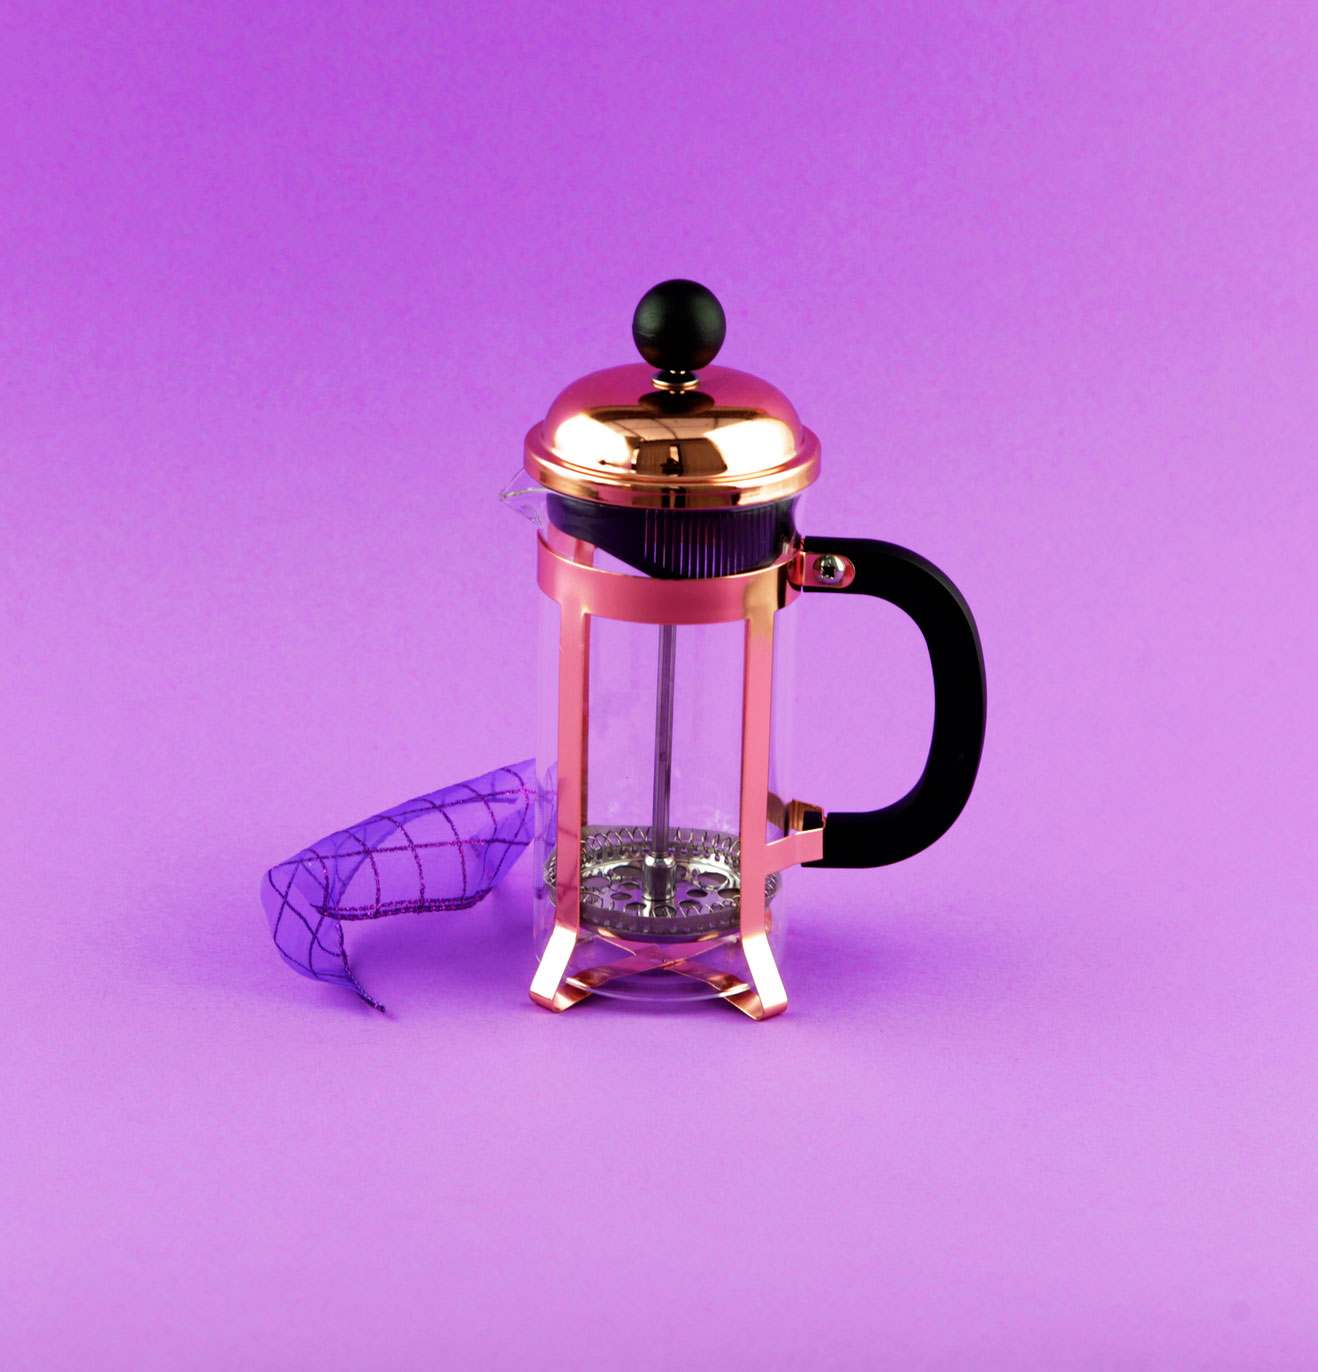 emotea Teapress (French press) 350 ml mindfulness